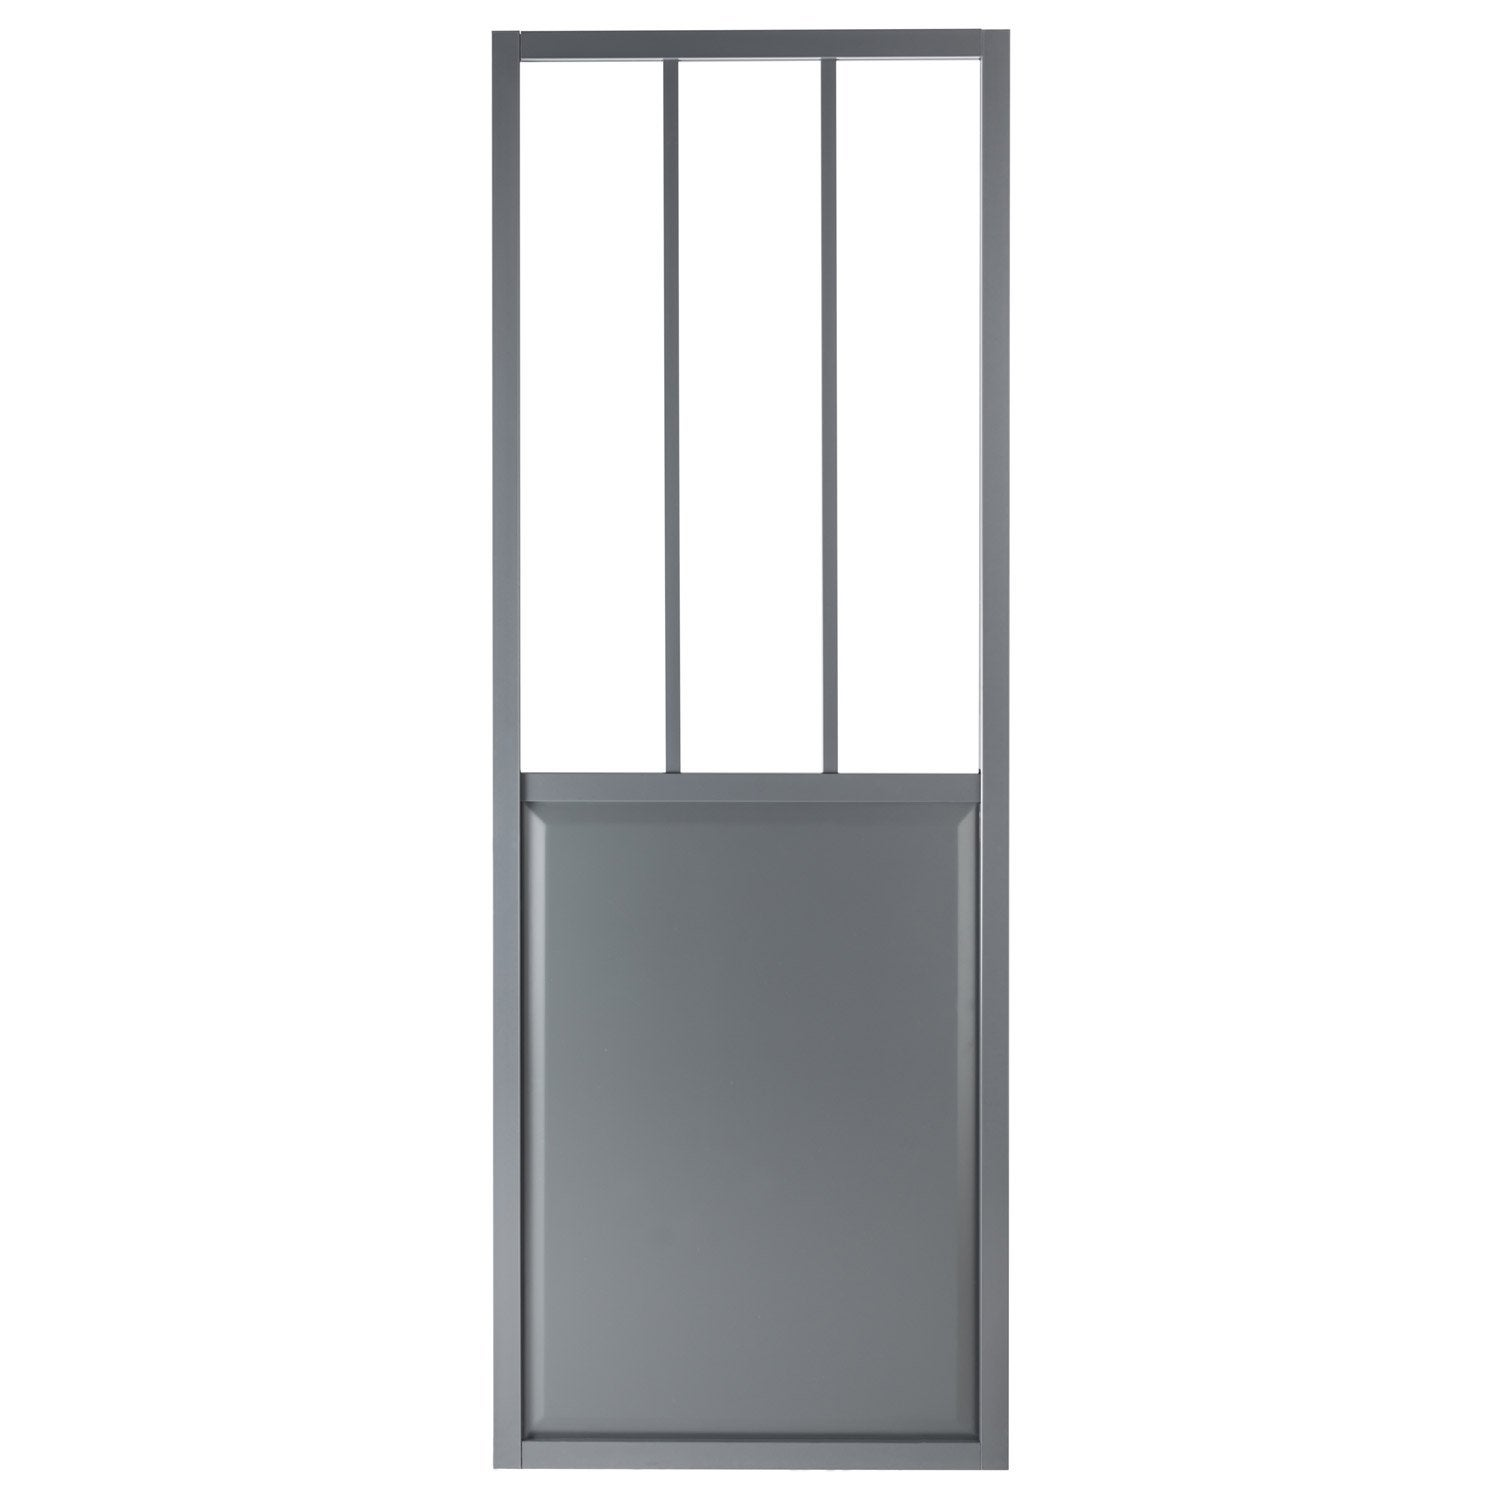 porte coulissante aluminium gris atelier verre clair. Black Bedroom Furniture Sets. Home Design Ideas